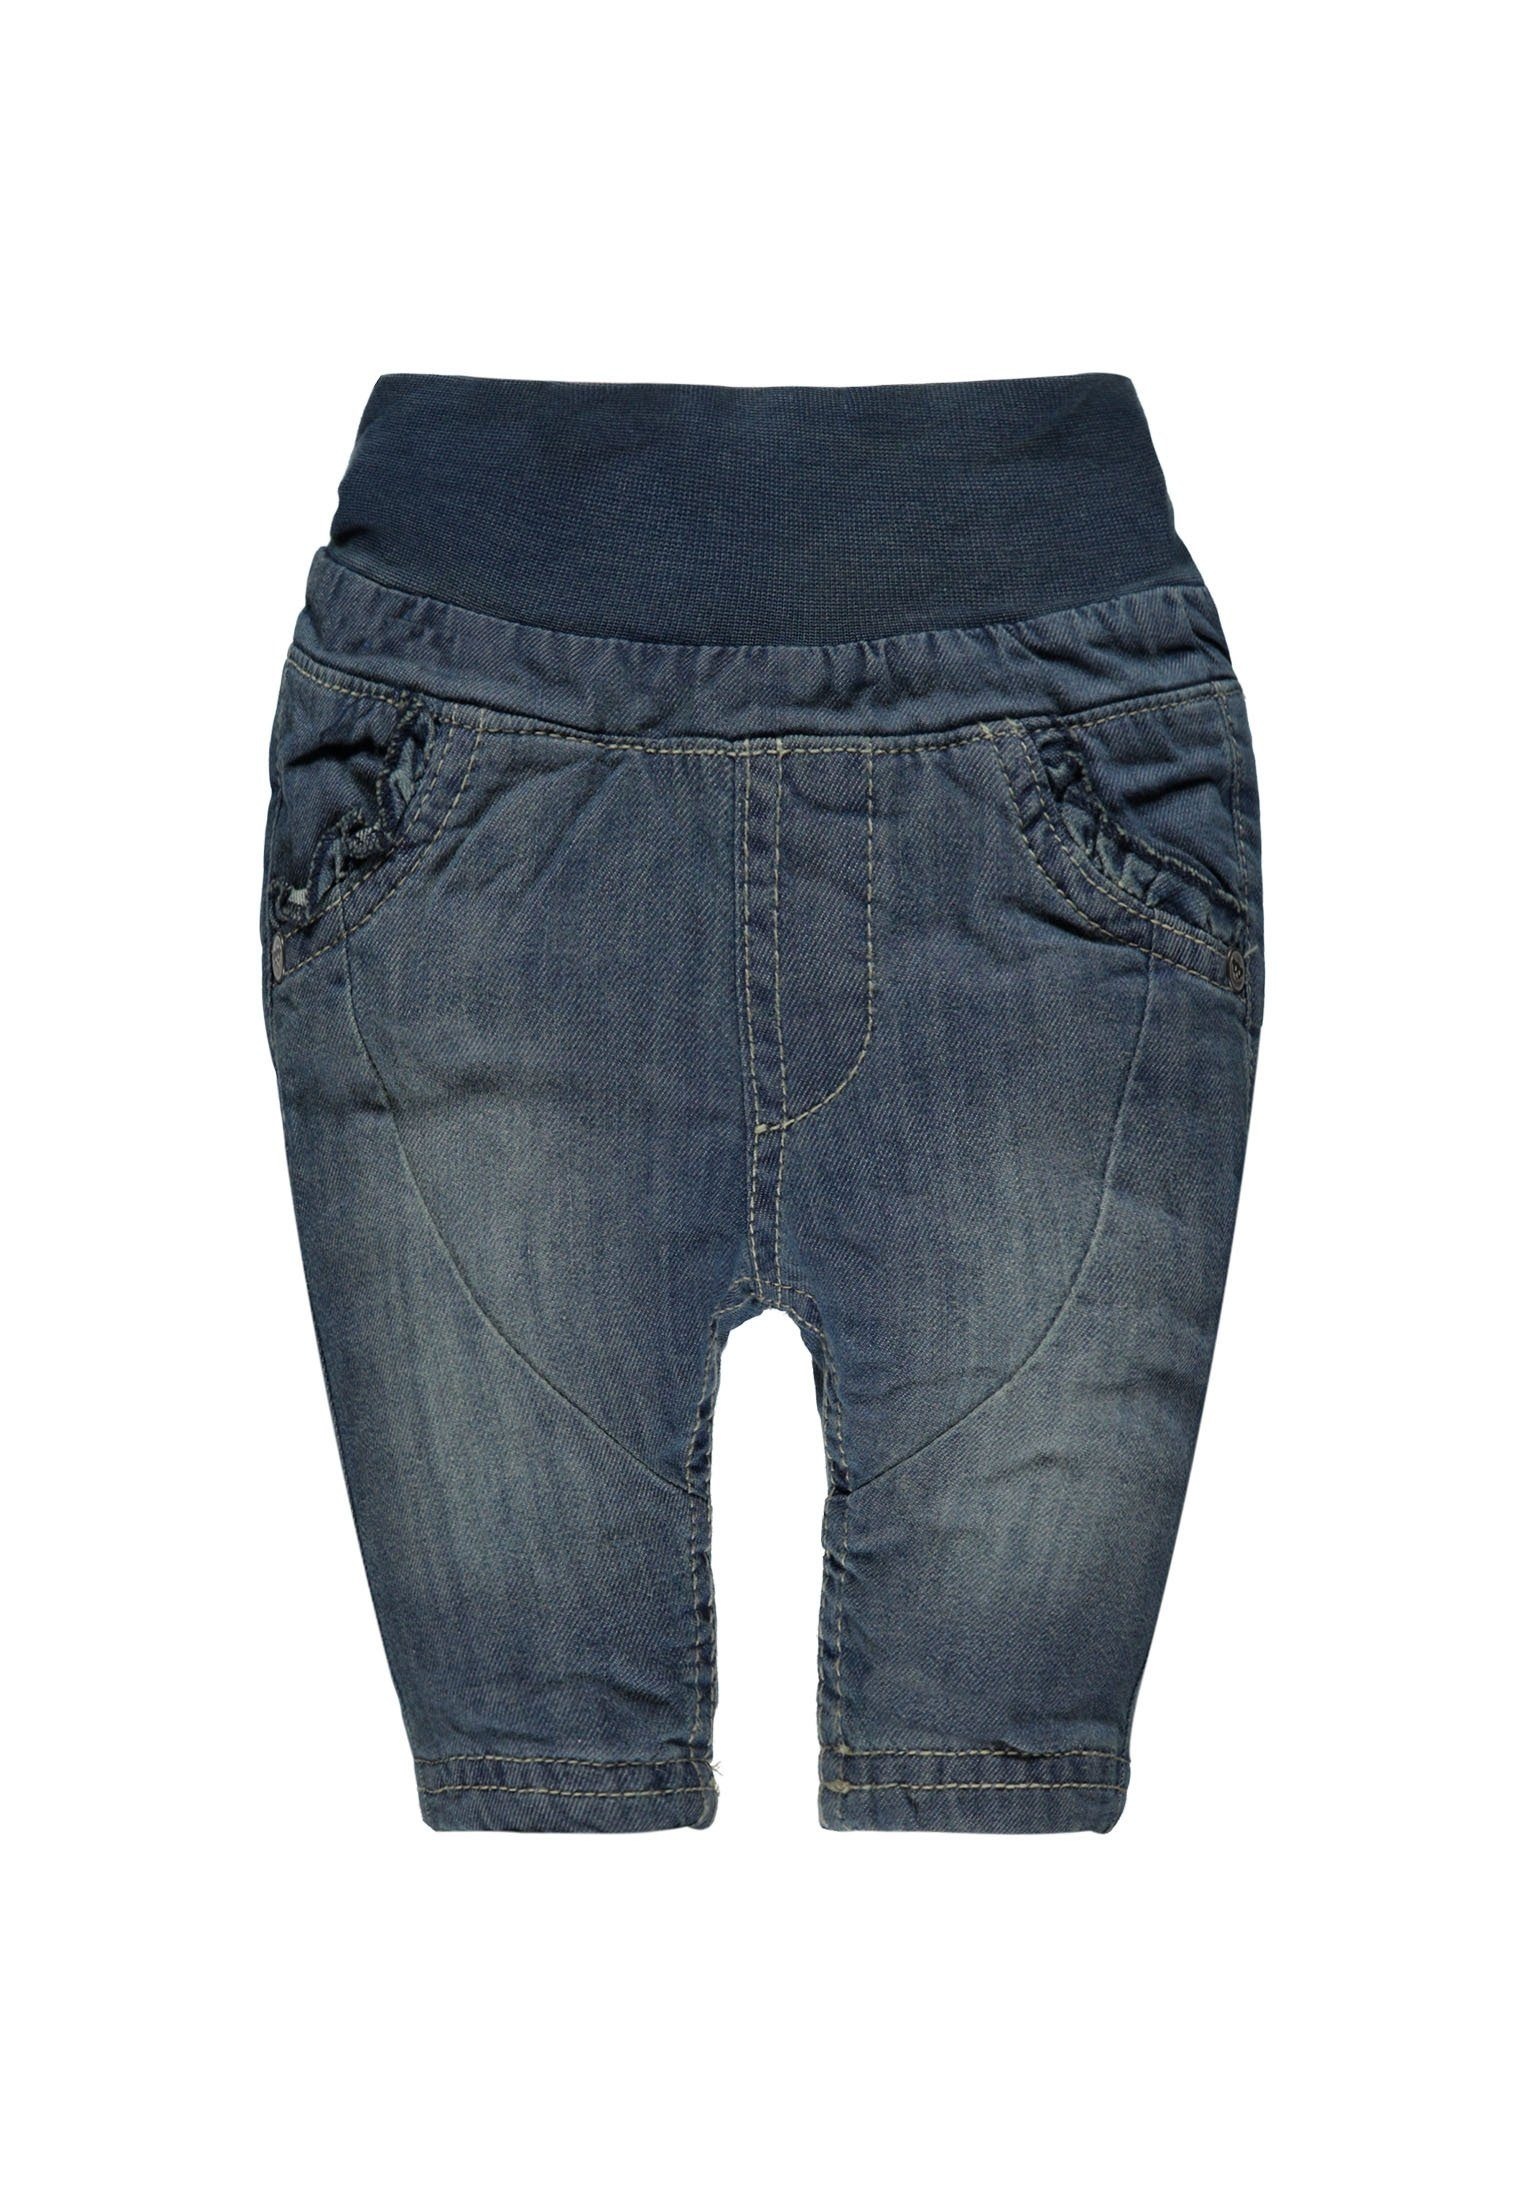 Steiff Collection Hose Jeans